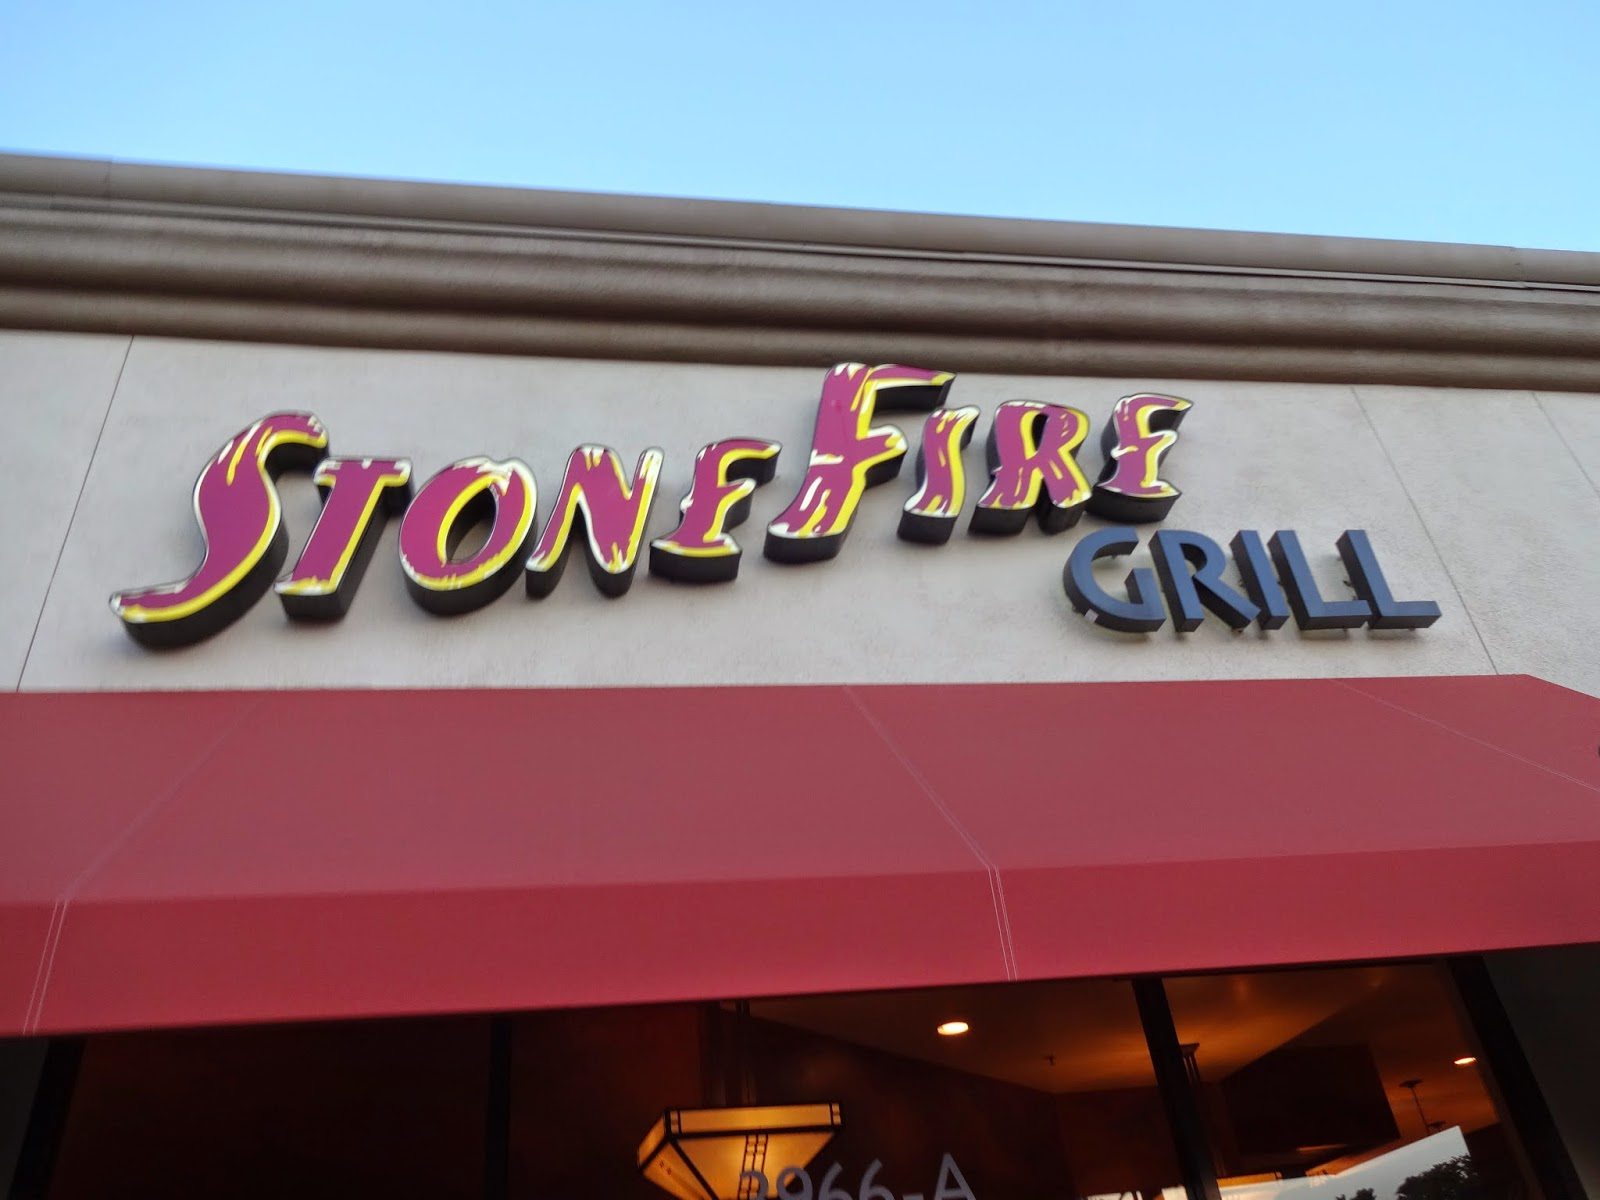 Prego Cucina Italiana Menu Eating My Way Through Oc New Spring Menu Items At Stonefire Grill